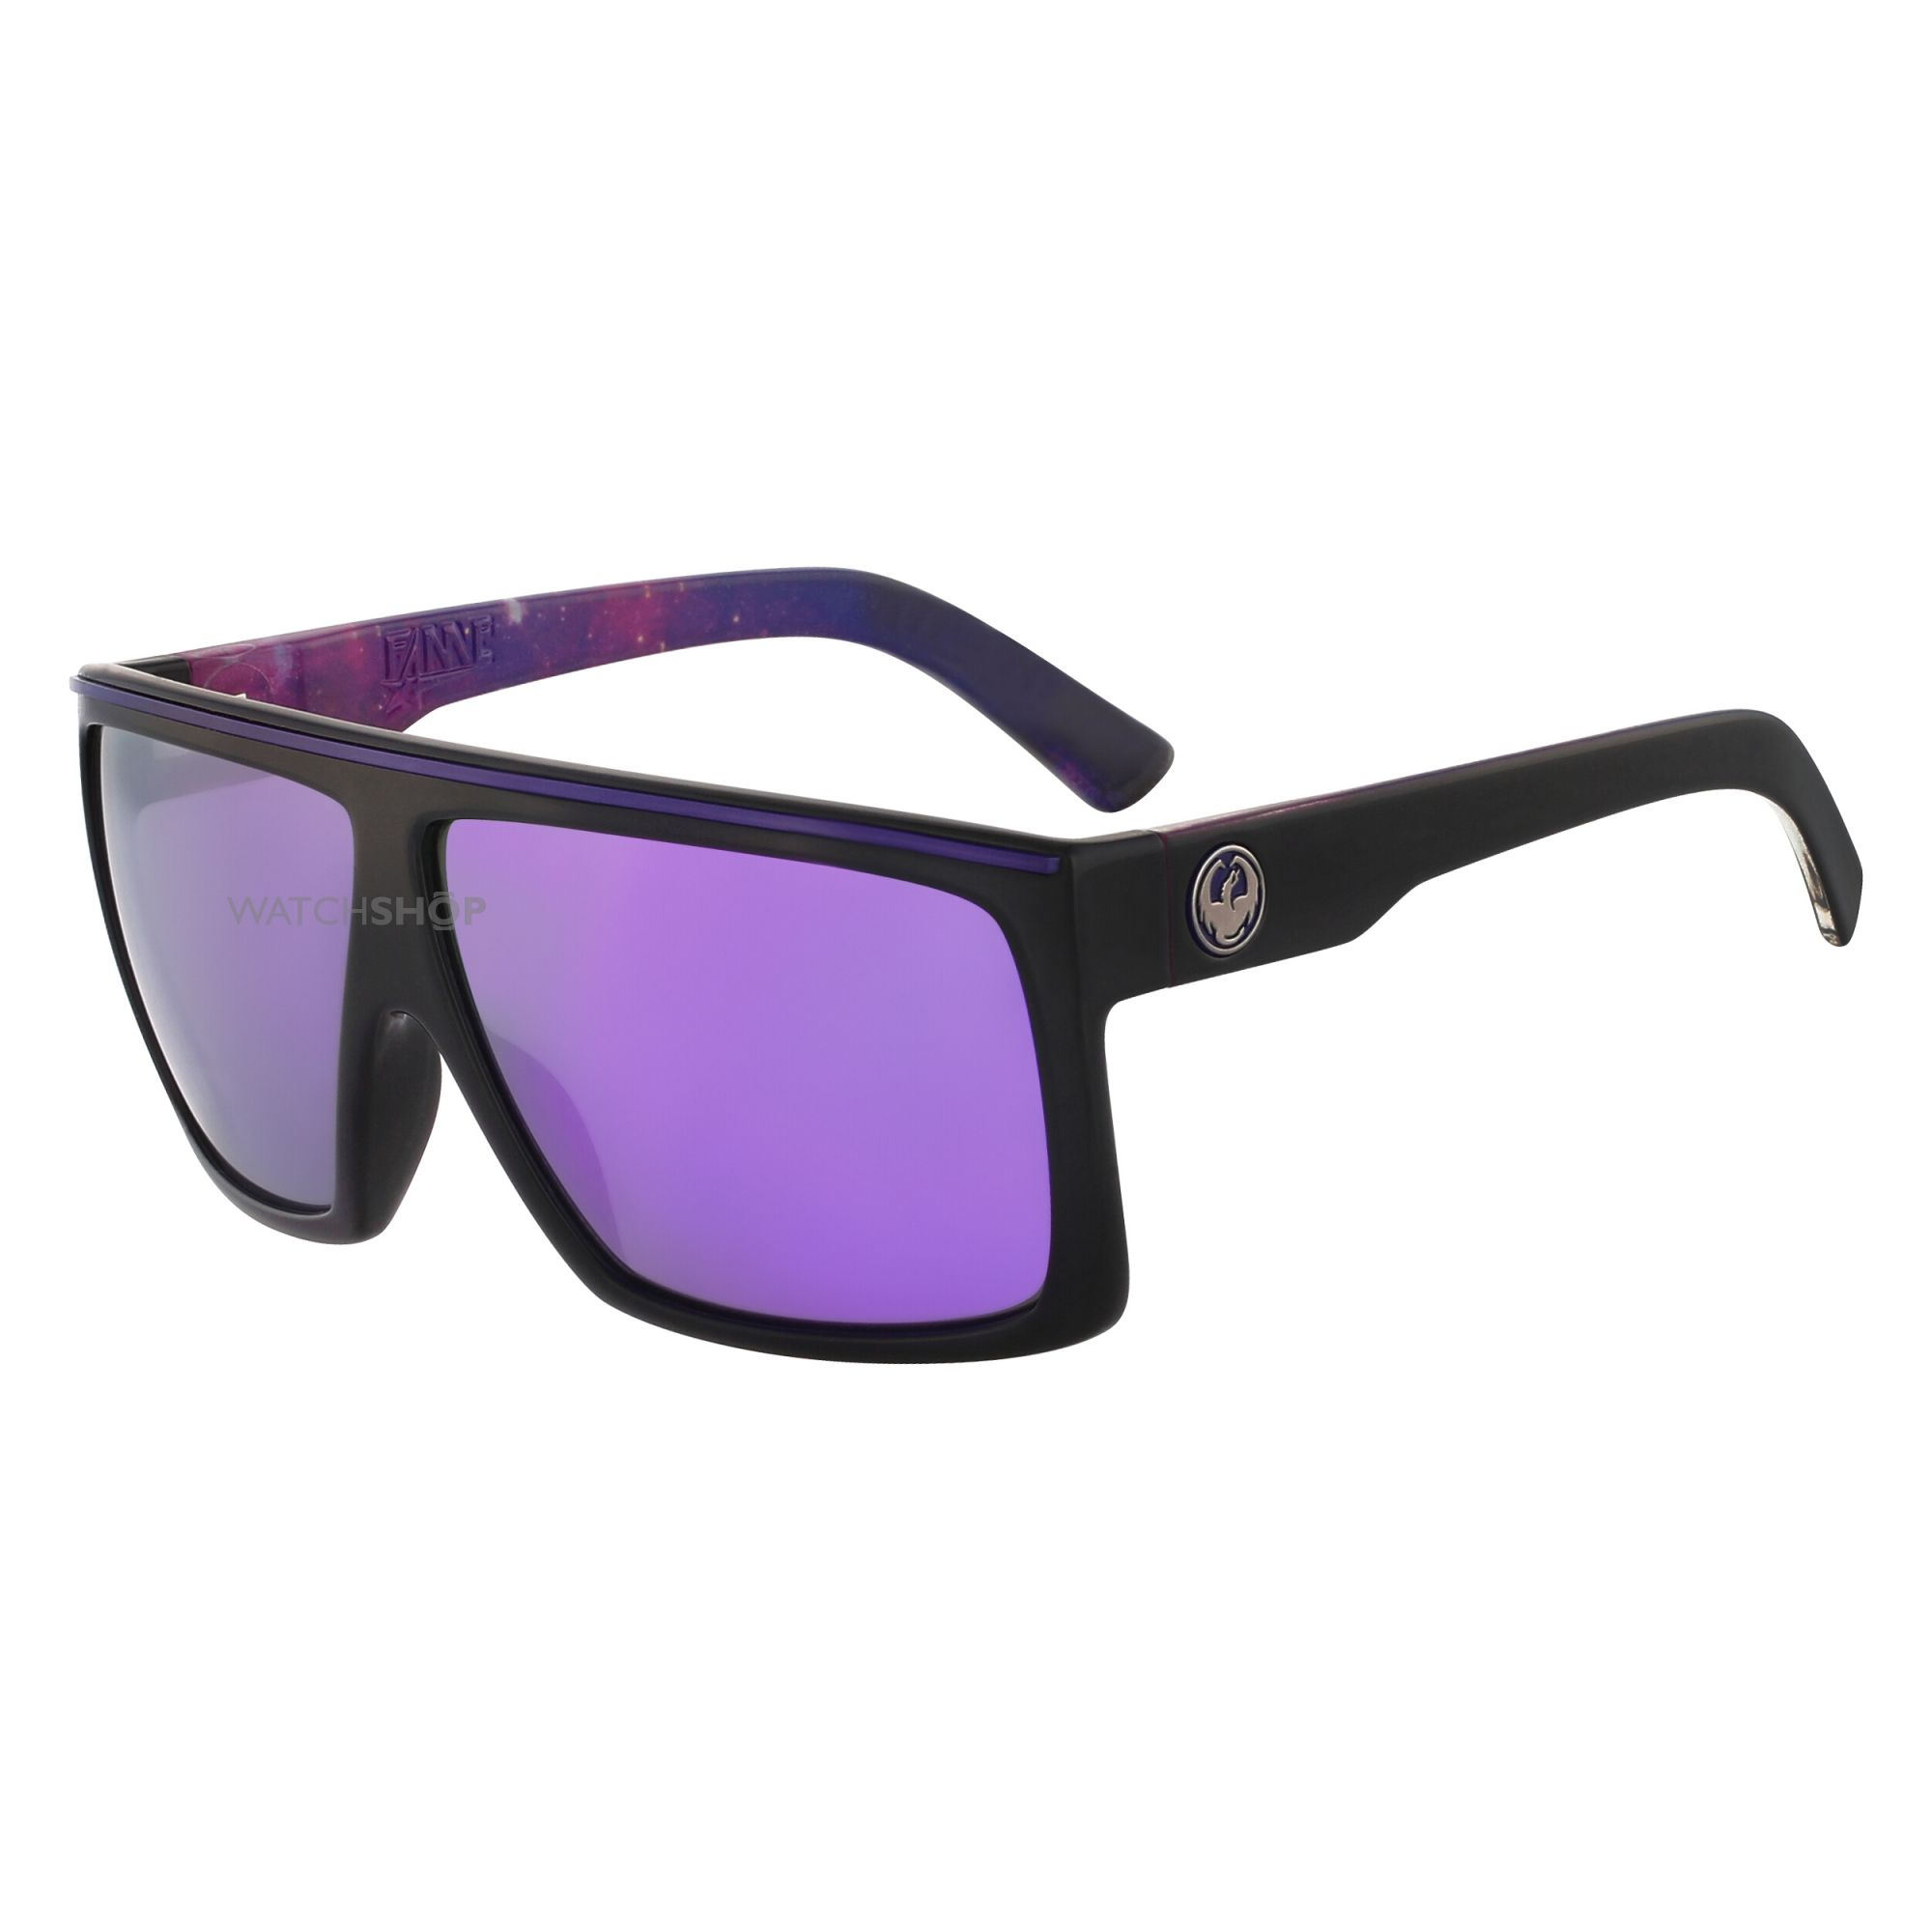 Dragon's Fame 2 sunglasses